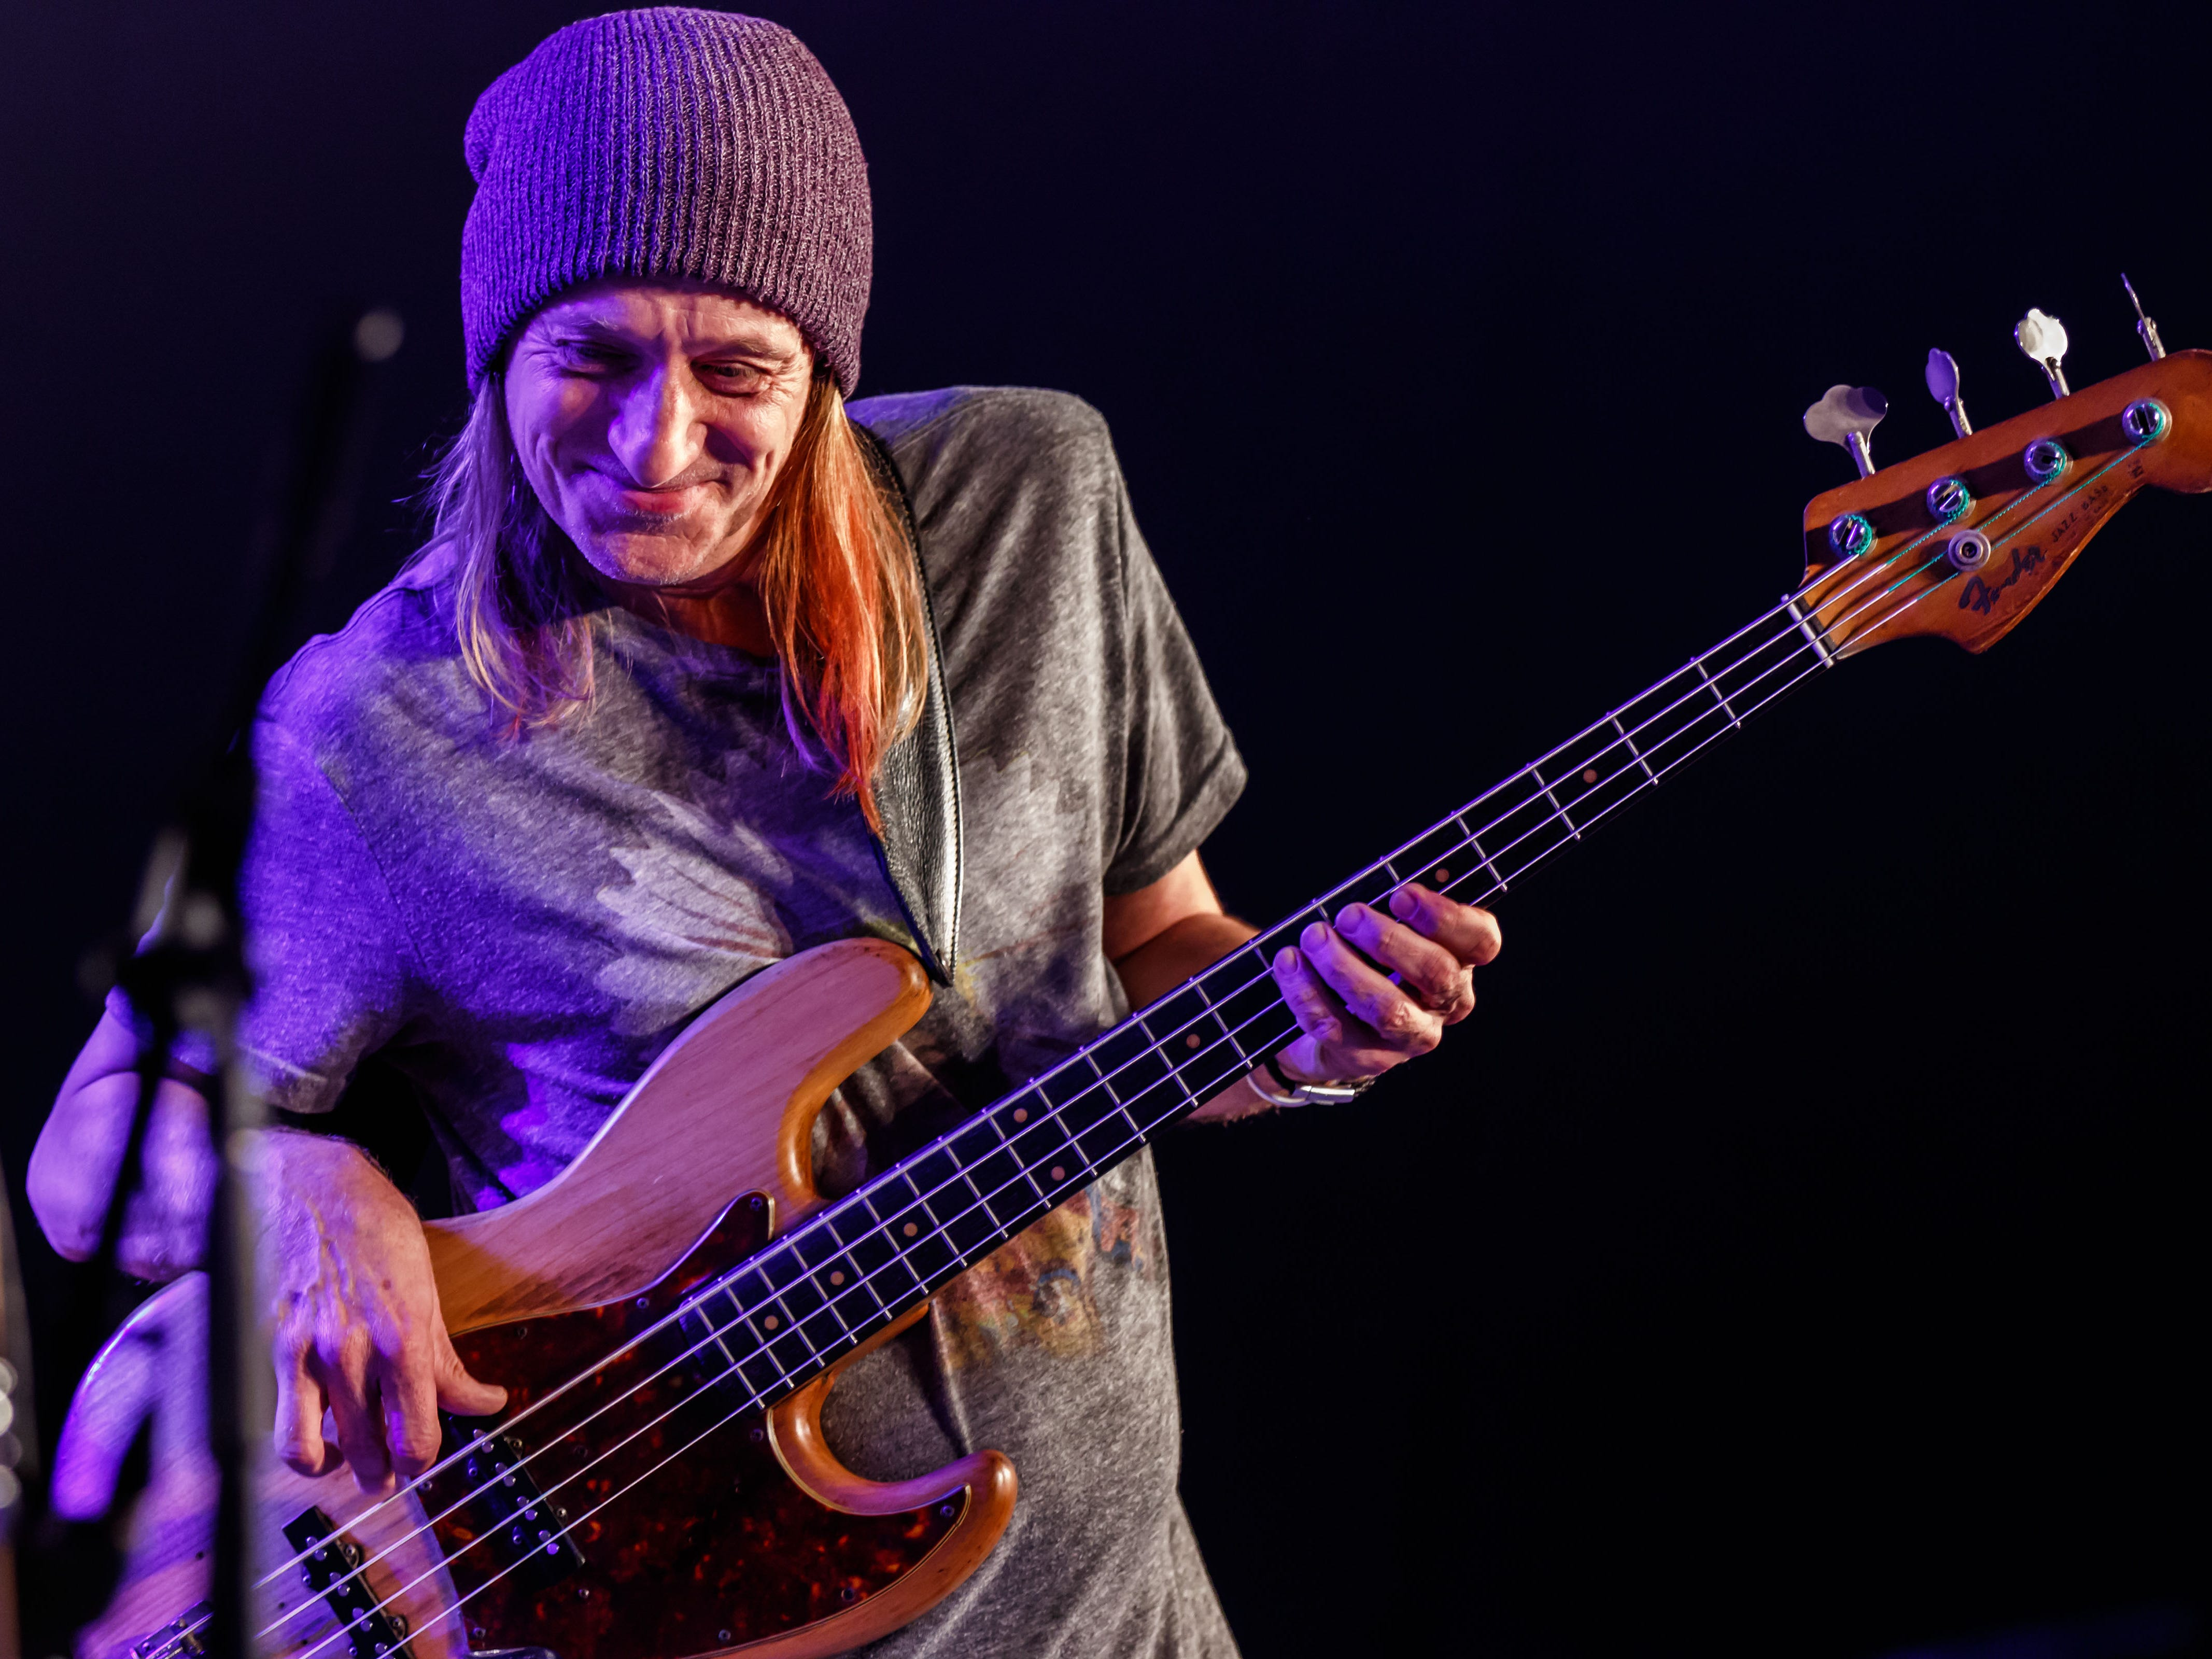 Bassist Greg Rzab performs with Carolyn Wonderland at the 12th annual Waukesha Rotary BluesFest in Naga-waukee Park on Friday, August 10, 2018. The annual two-day music and art festival features live music, food and beverages, artist displays and more.